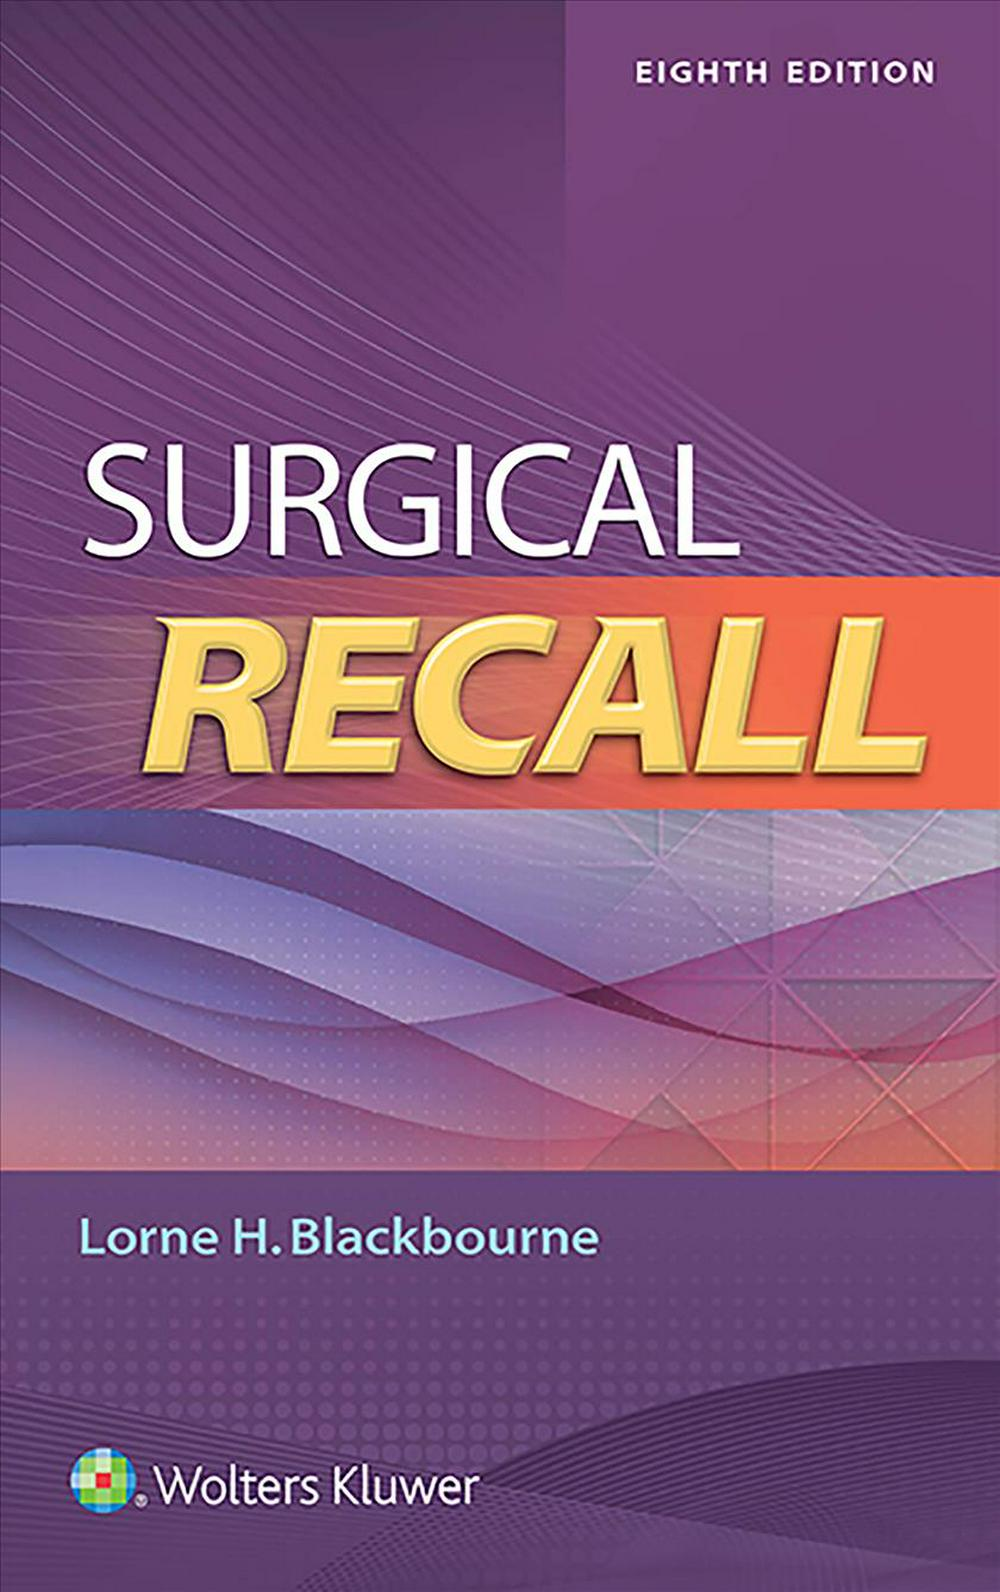 Surgical Recall by Lorne H. Blackbourne, ISBN: 9781496370815